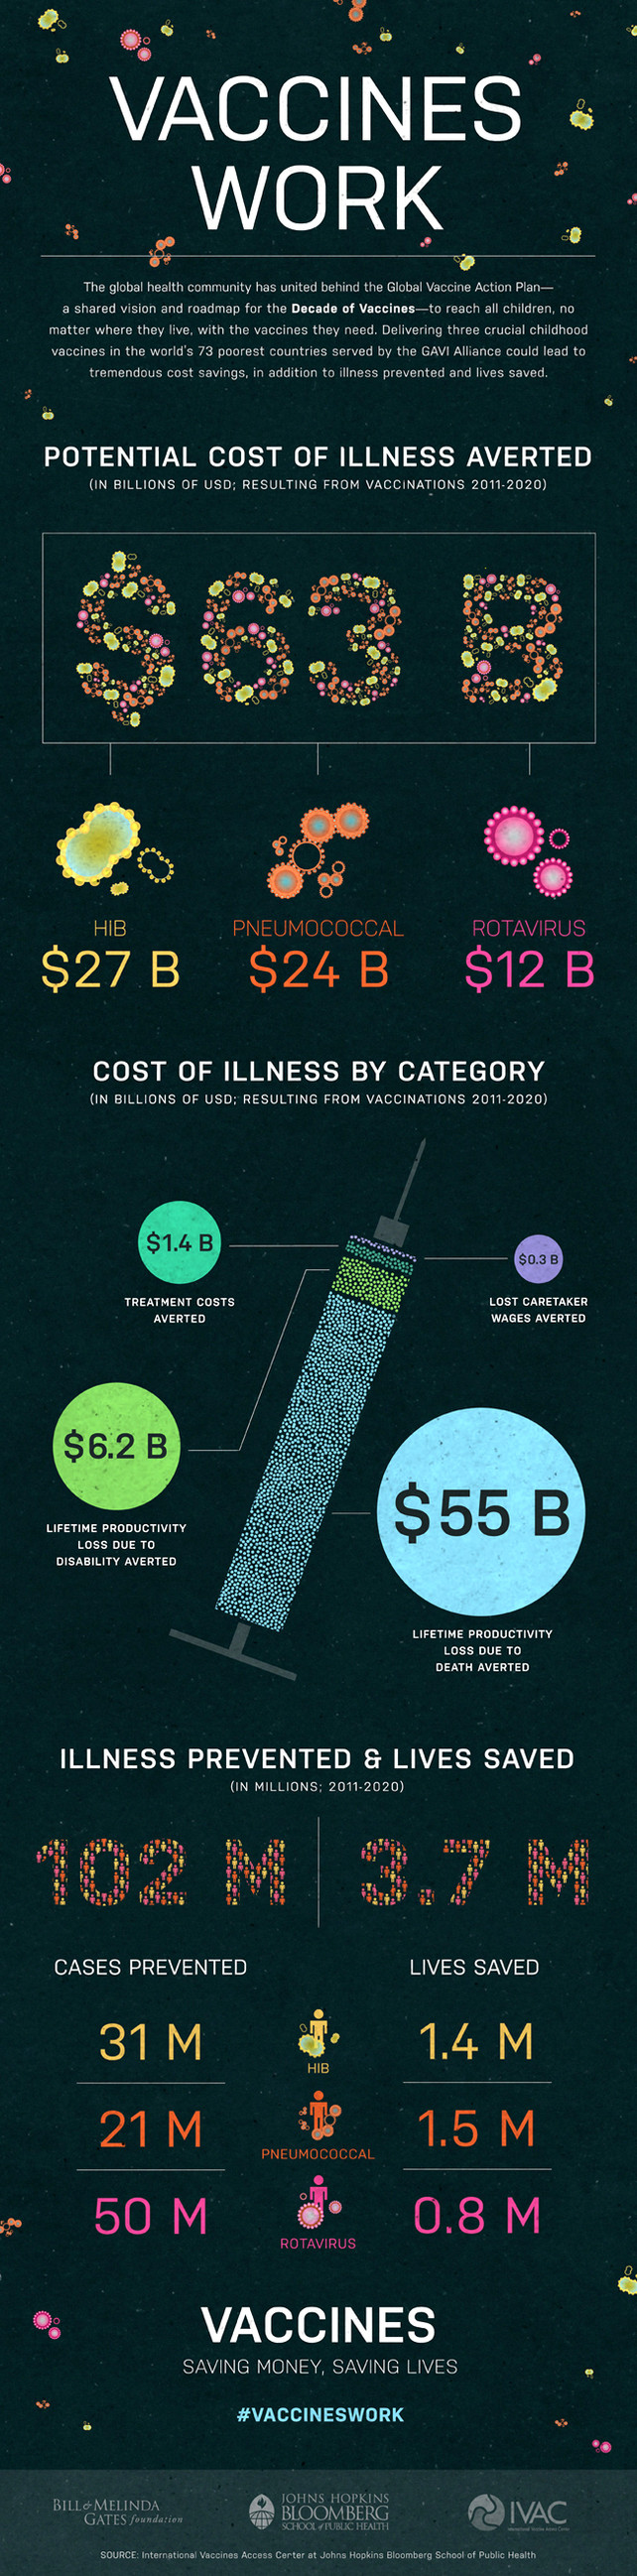 Vaccines-Save-Lives-And-Money-infographic